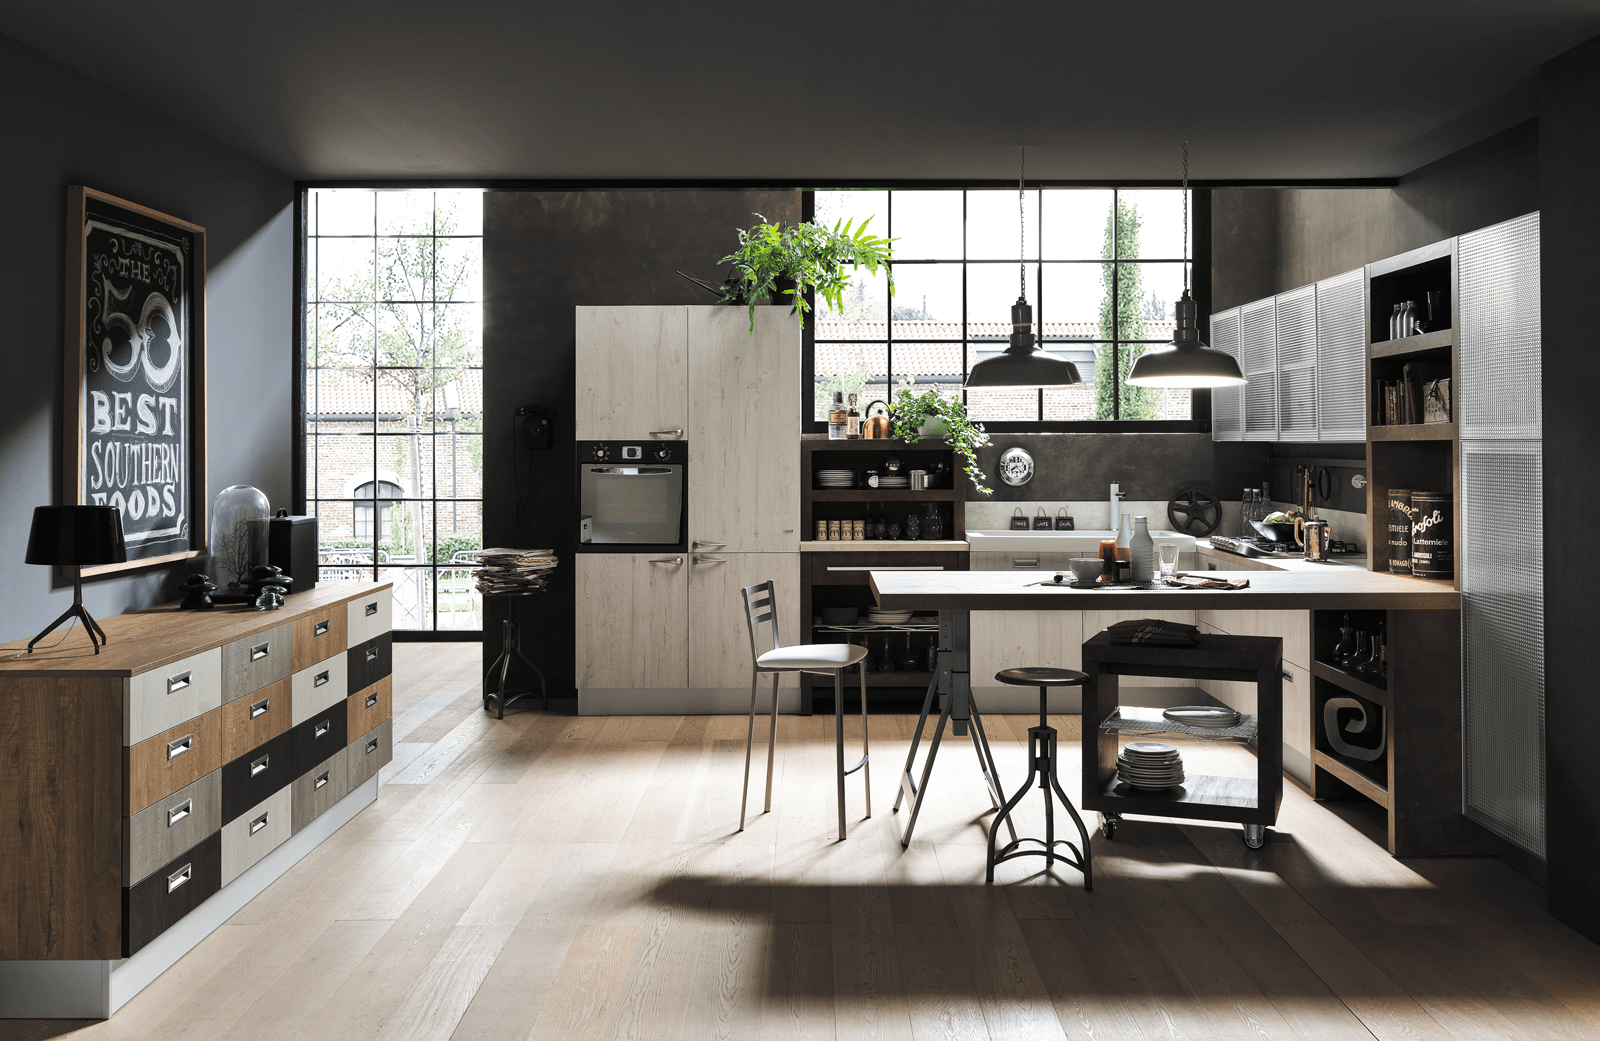 Awesome Cucine Stile Barocco Pictures - Ideas & Design 2017 ...